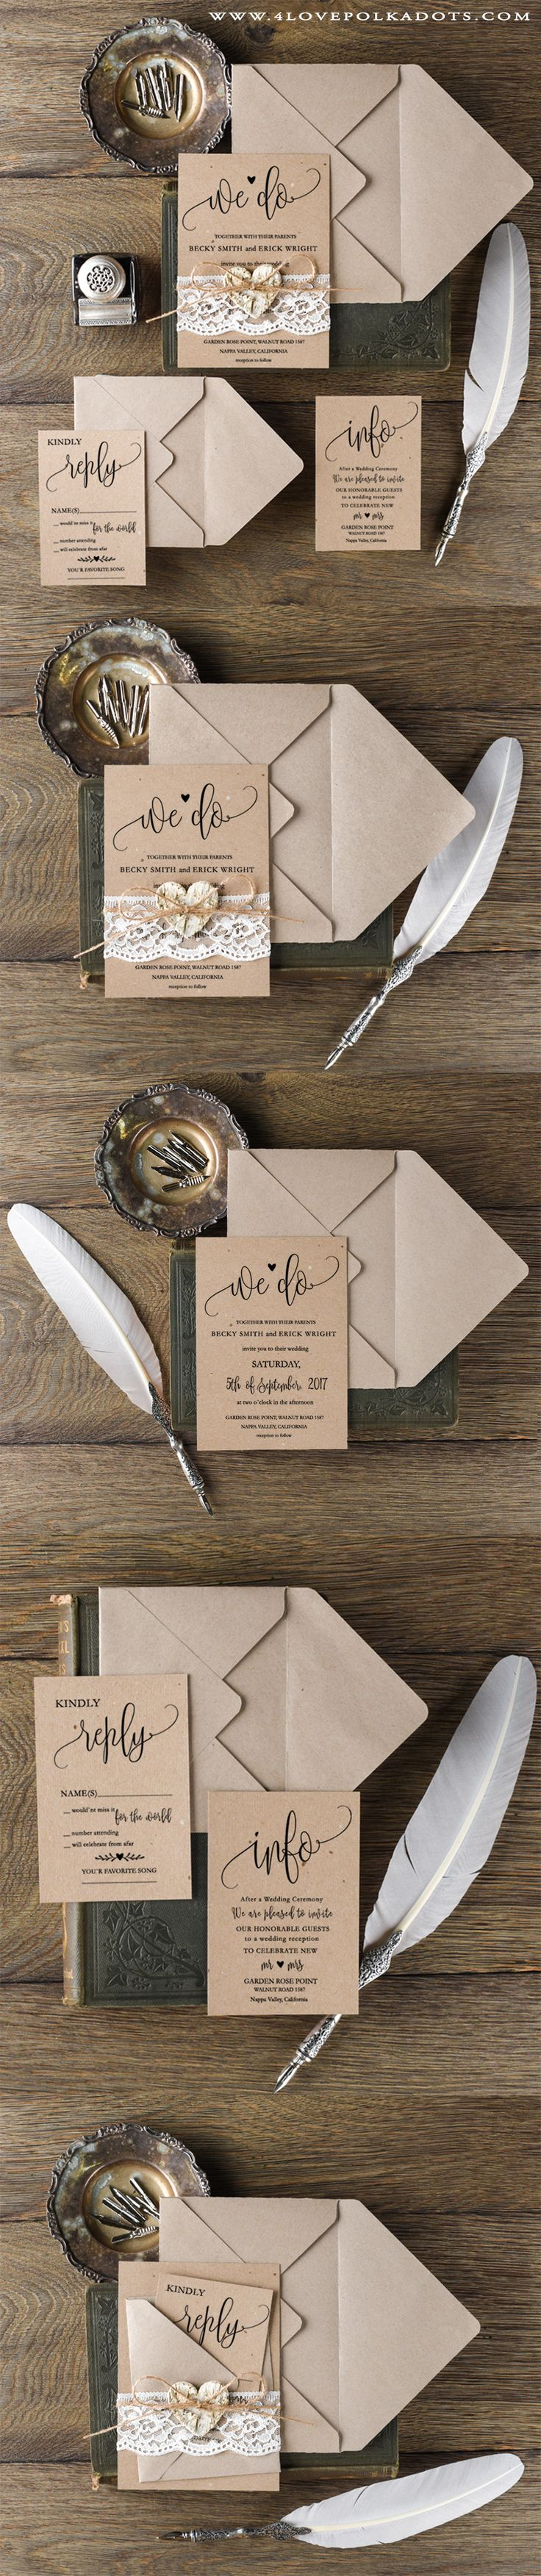 149 best cards wedding invites images on pinterest invitation